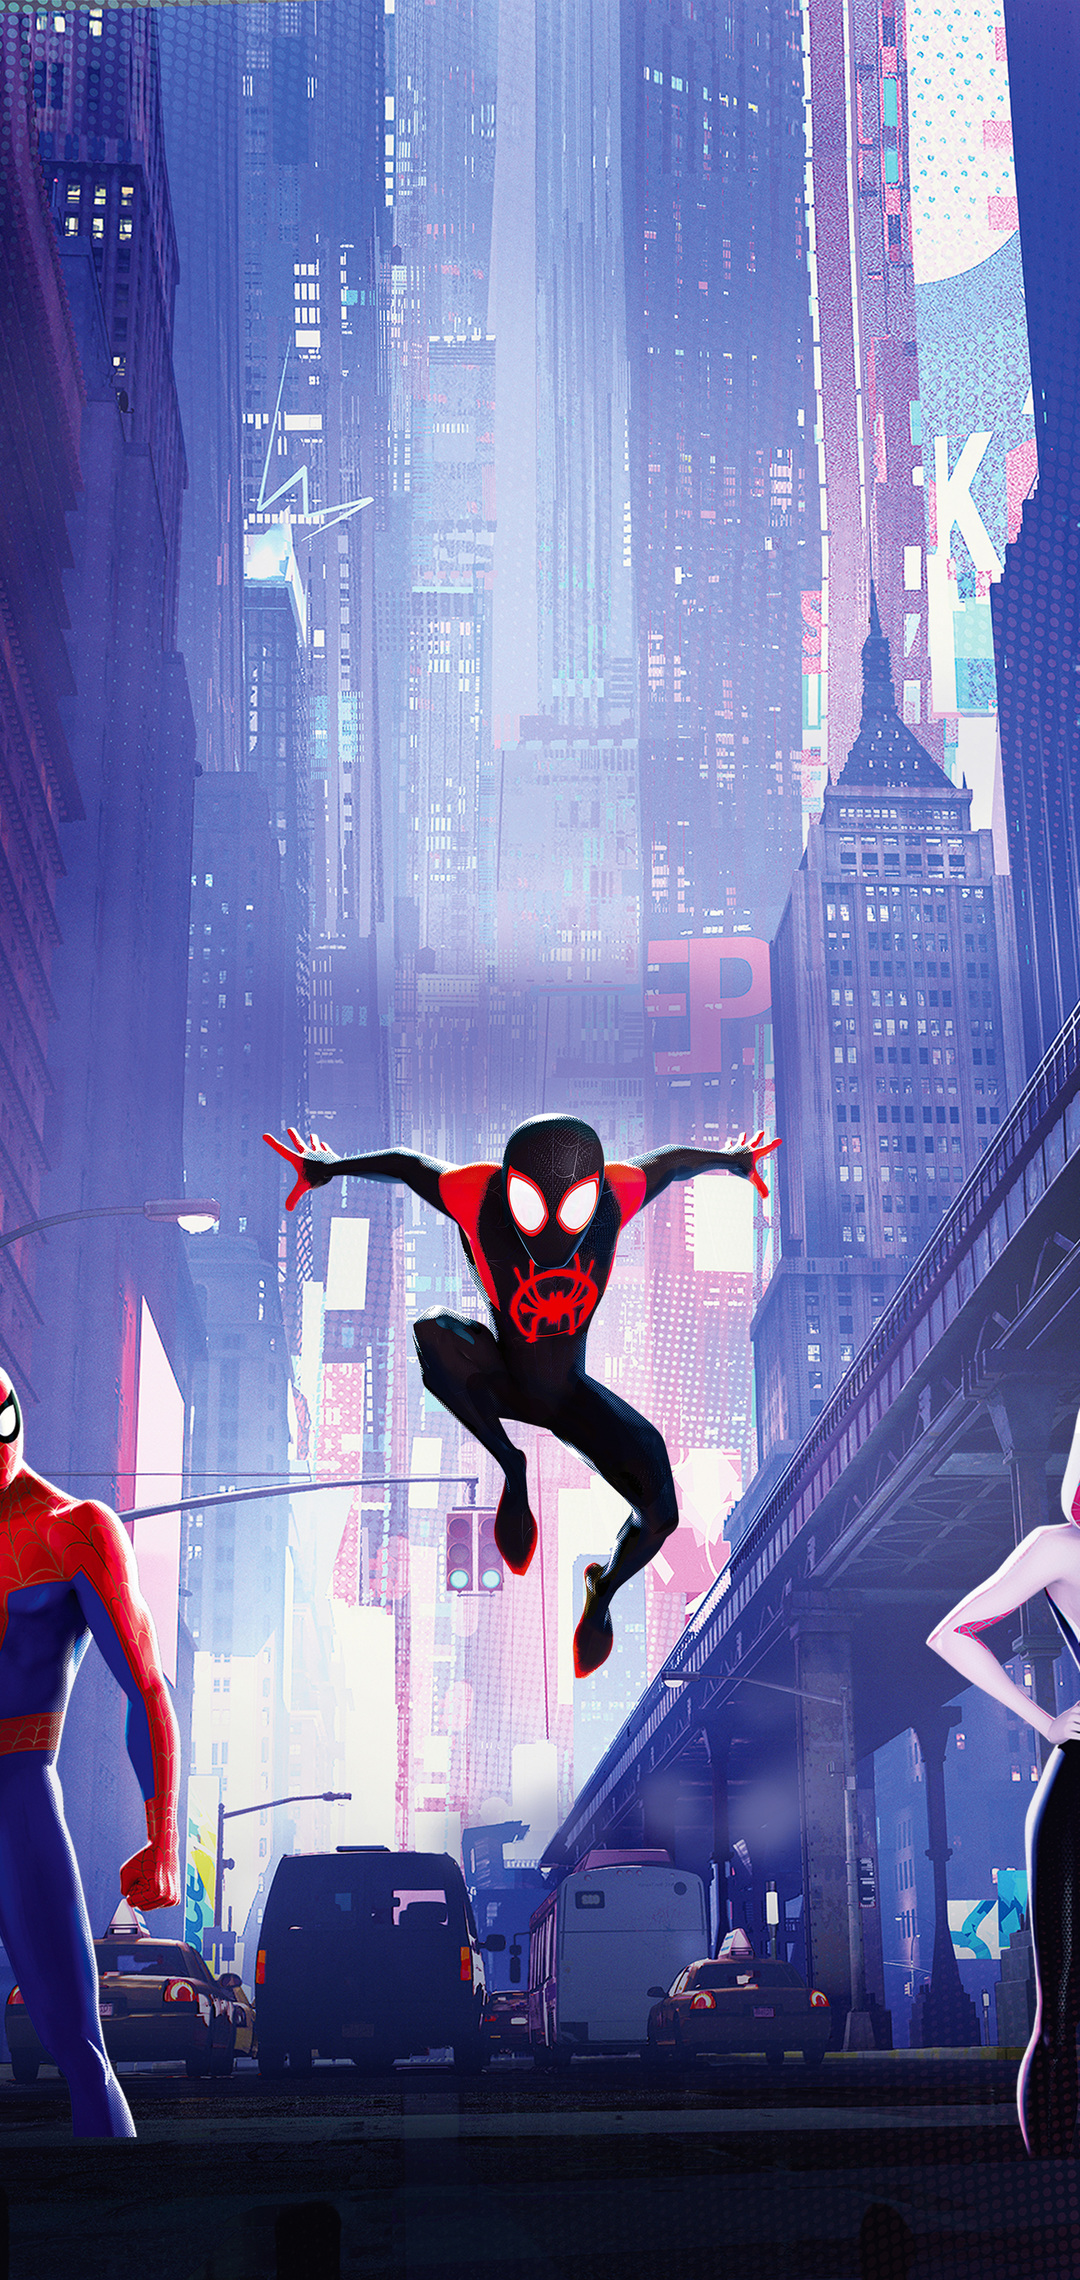 1080x2280 Spiderman Into The Spiderverse 15k Wallpaper 1080x2280 1080x2280